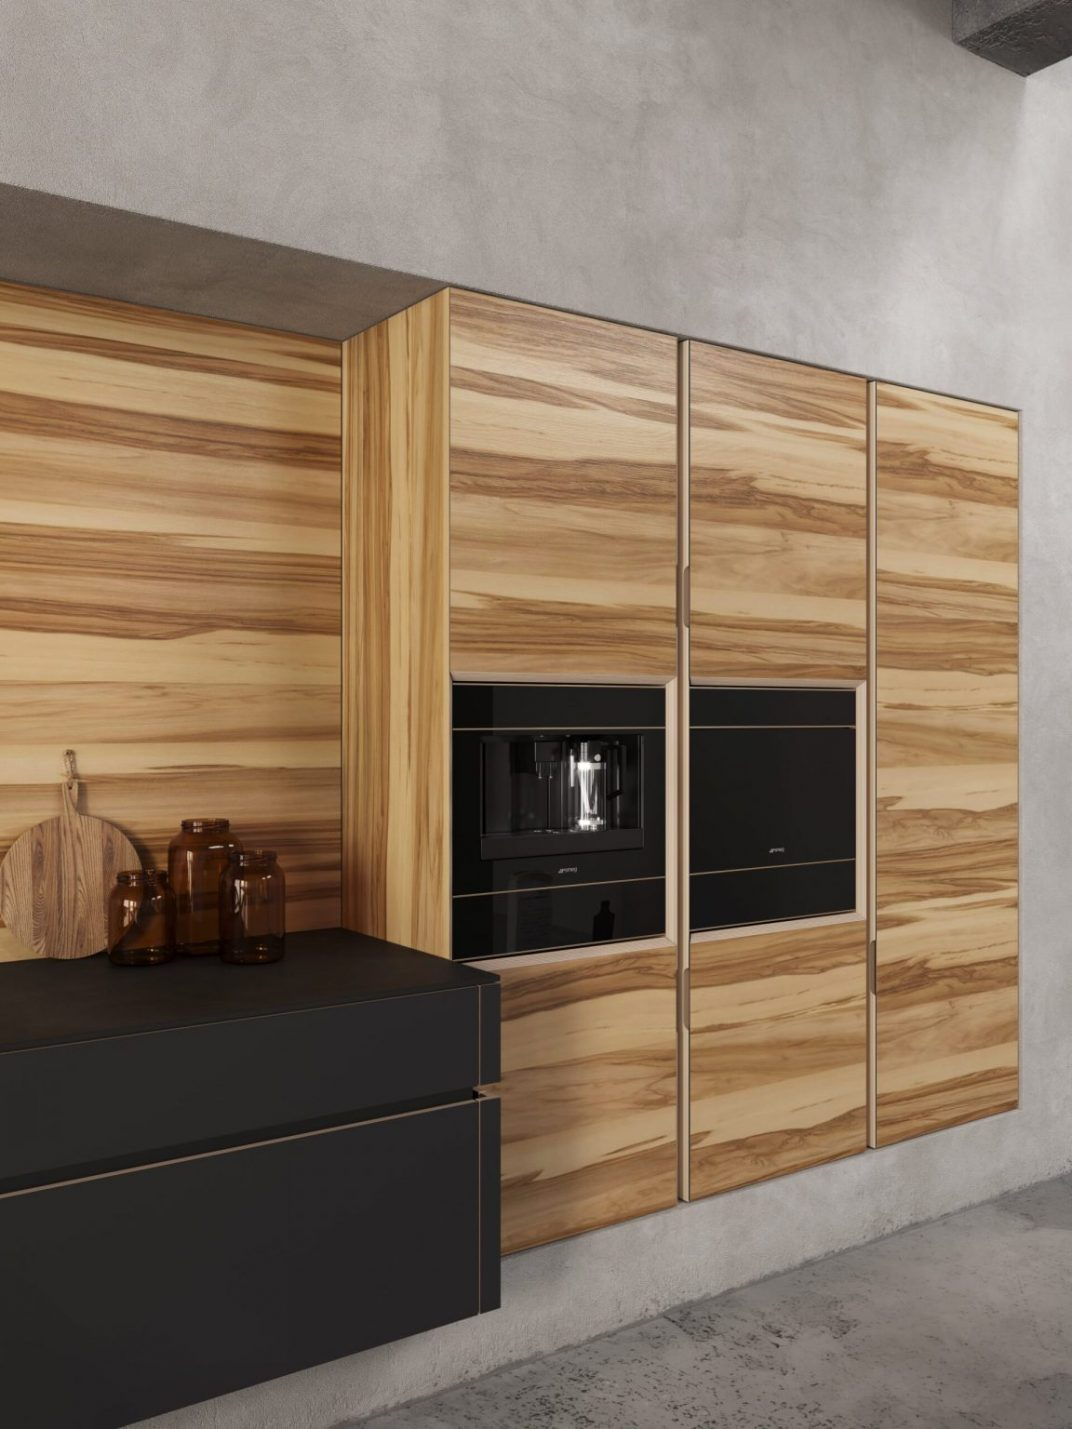 kitchen_studio_gravity_5-scaled